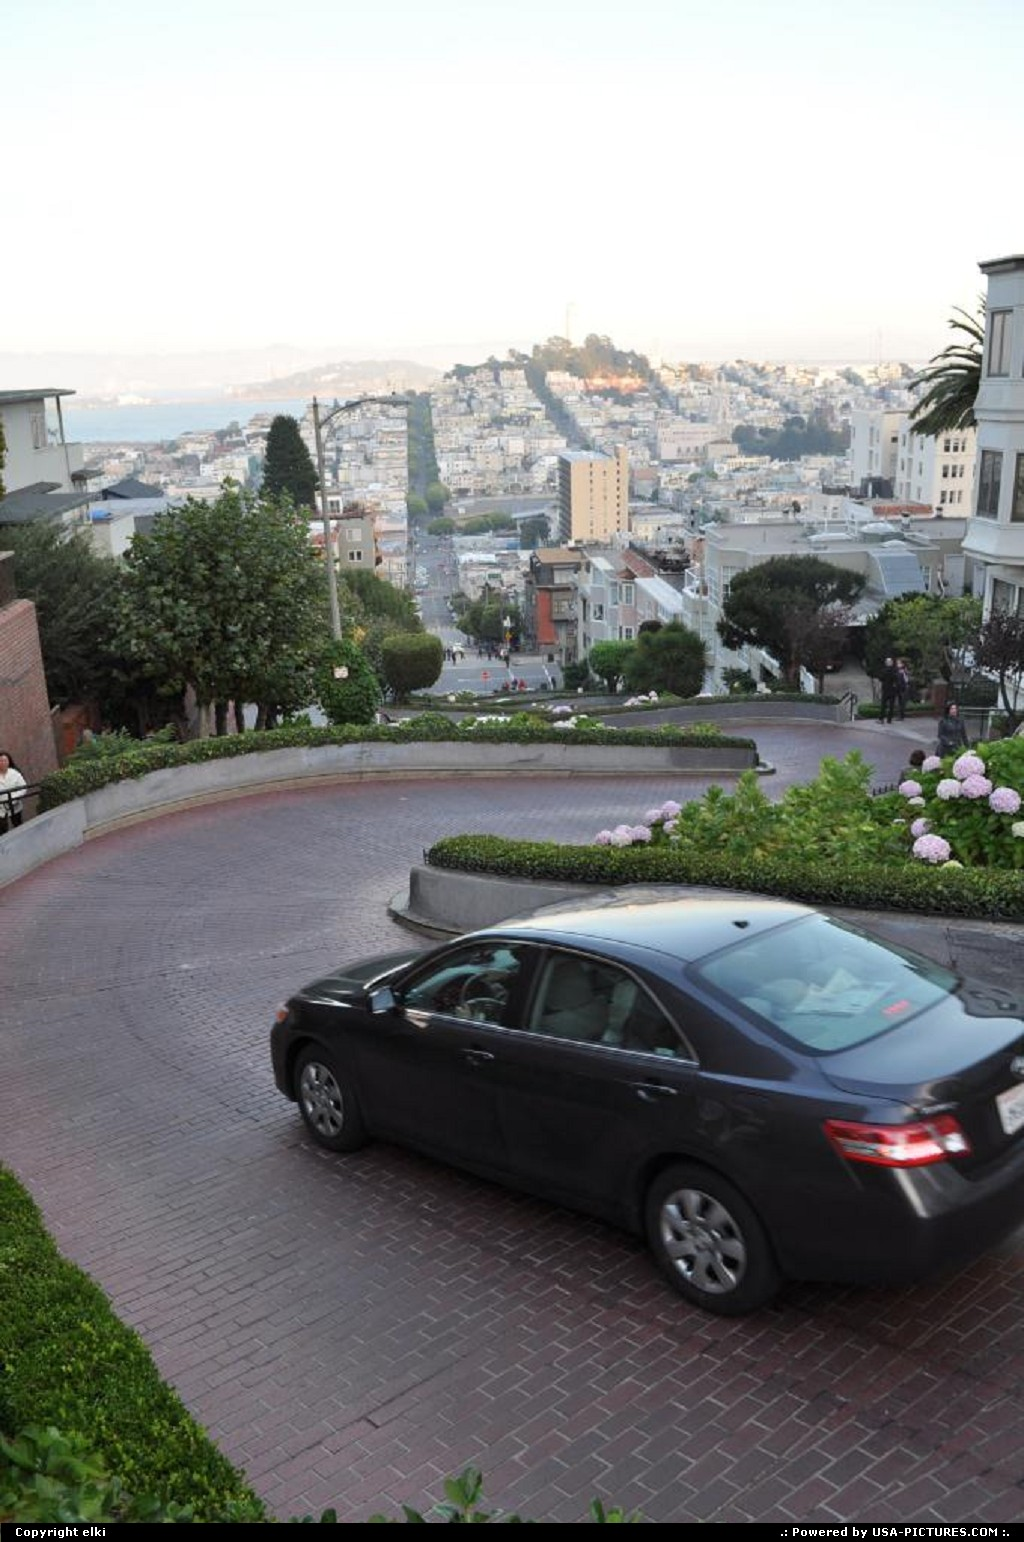 Picture by elki: San Francisco California   san fransisco california lombard street